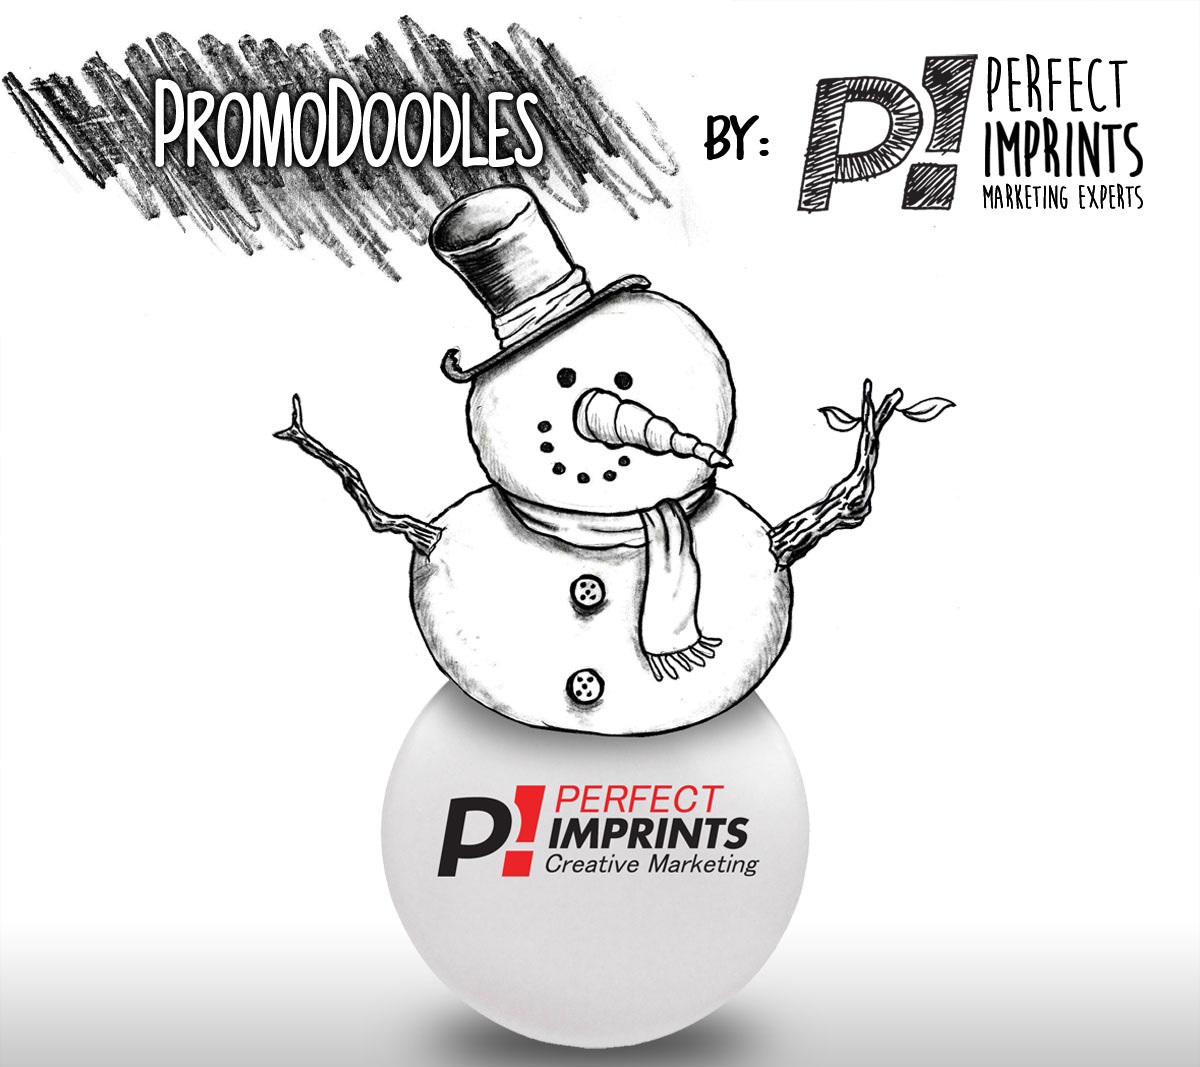 PromoDoodles by Perfect Imprints